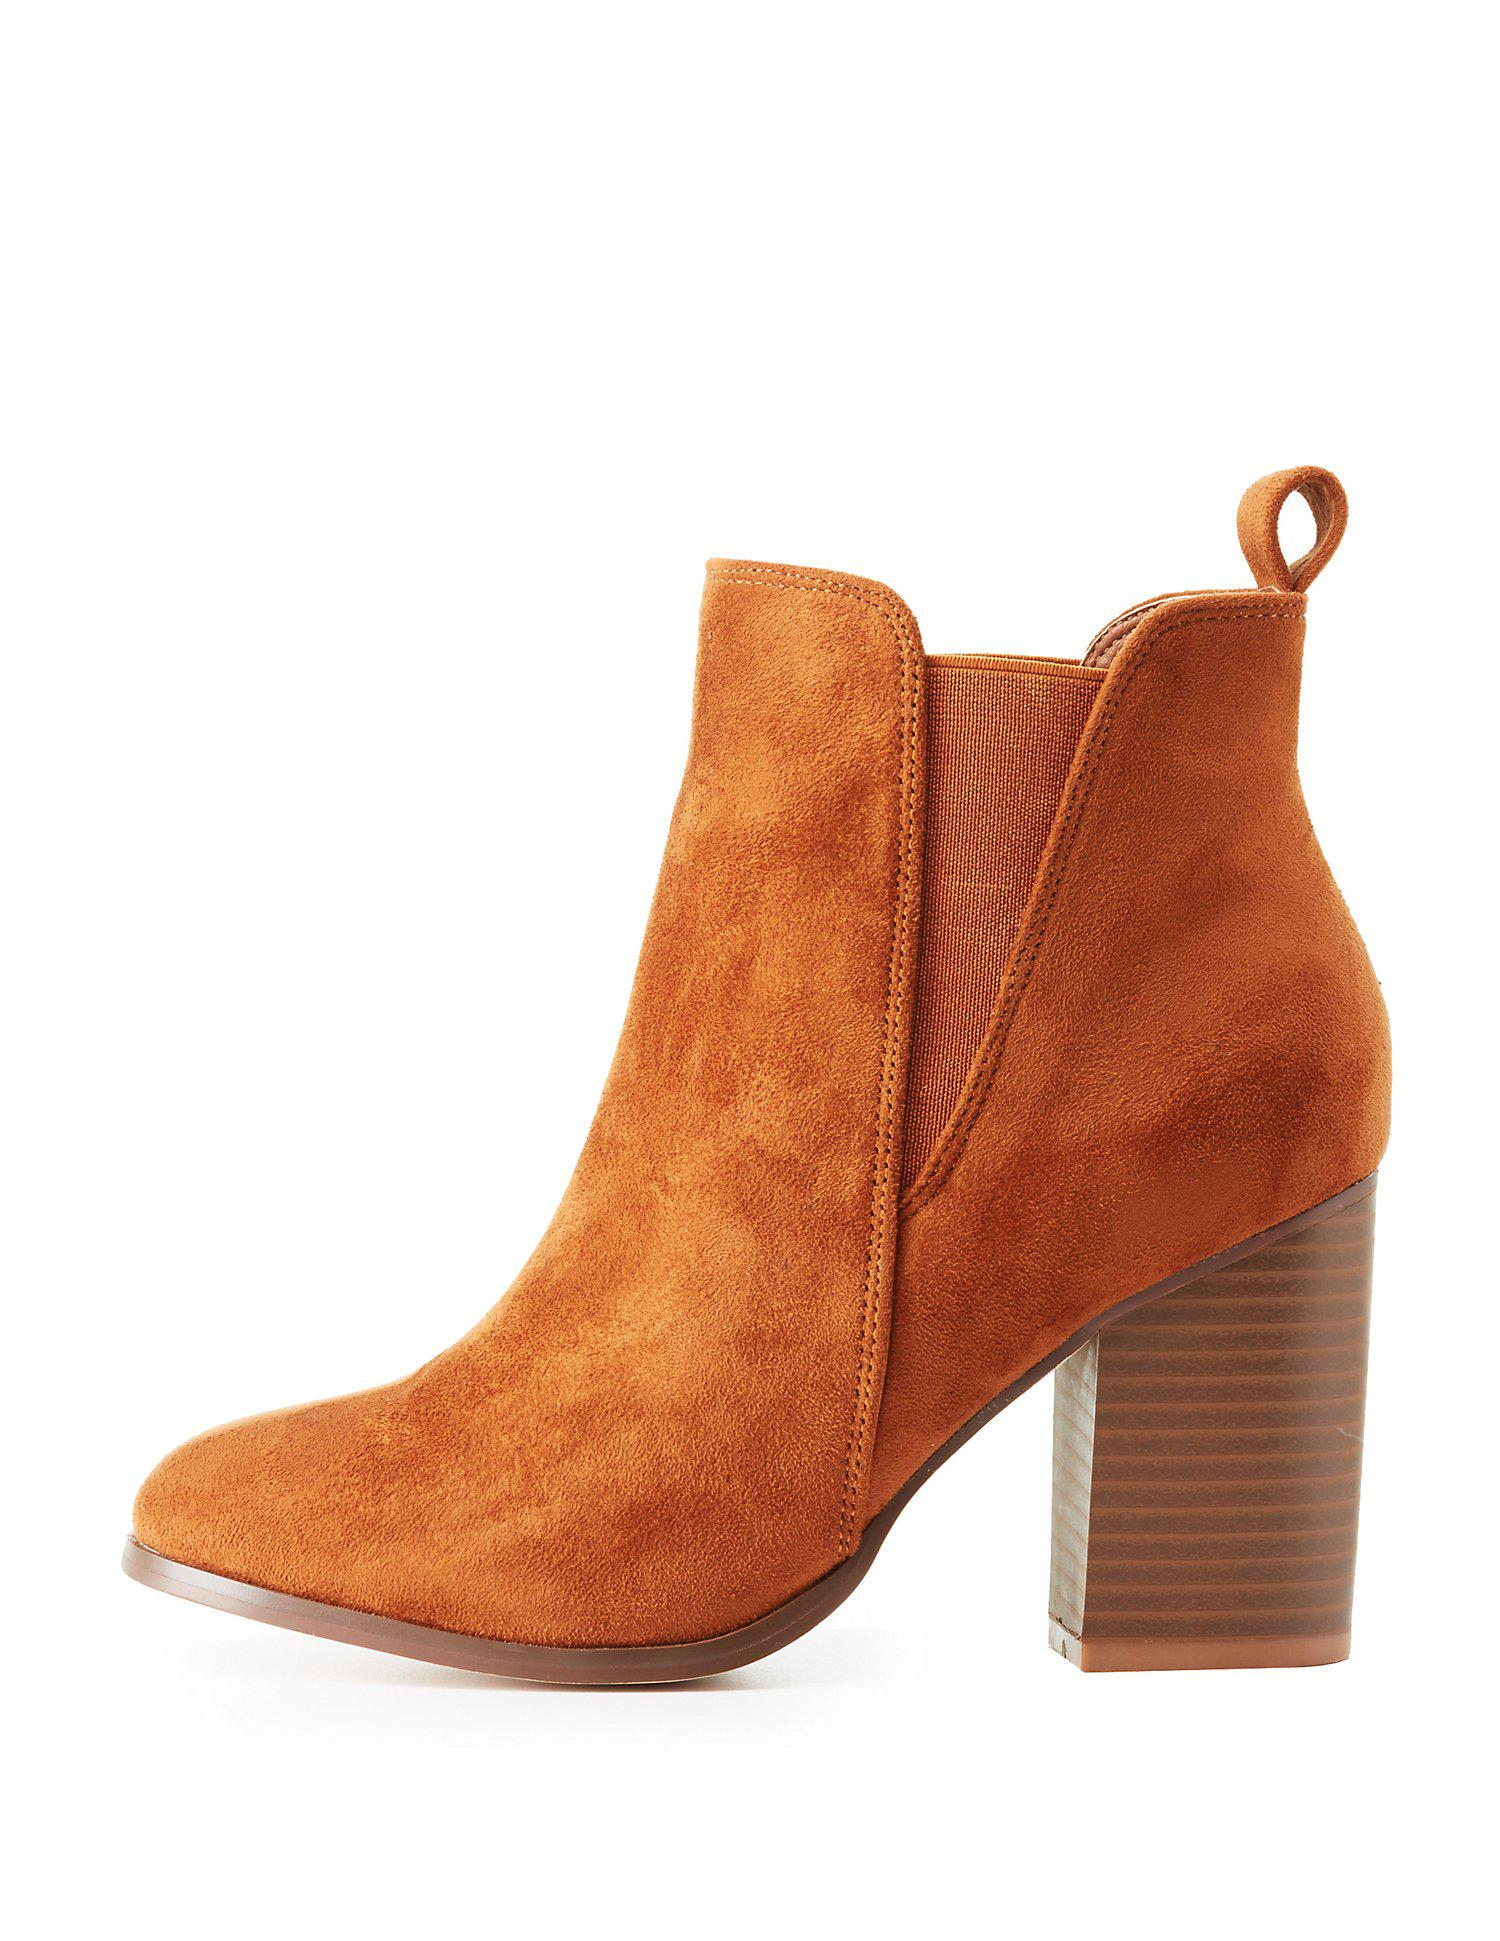 33dbd320d4eb Lyst - Charlotte Russe Gored Faux Suede Ankle Boots in Brown